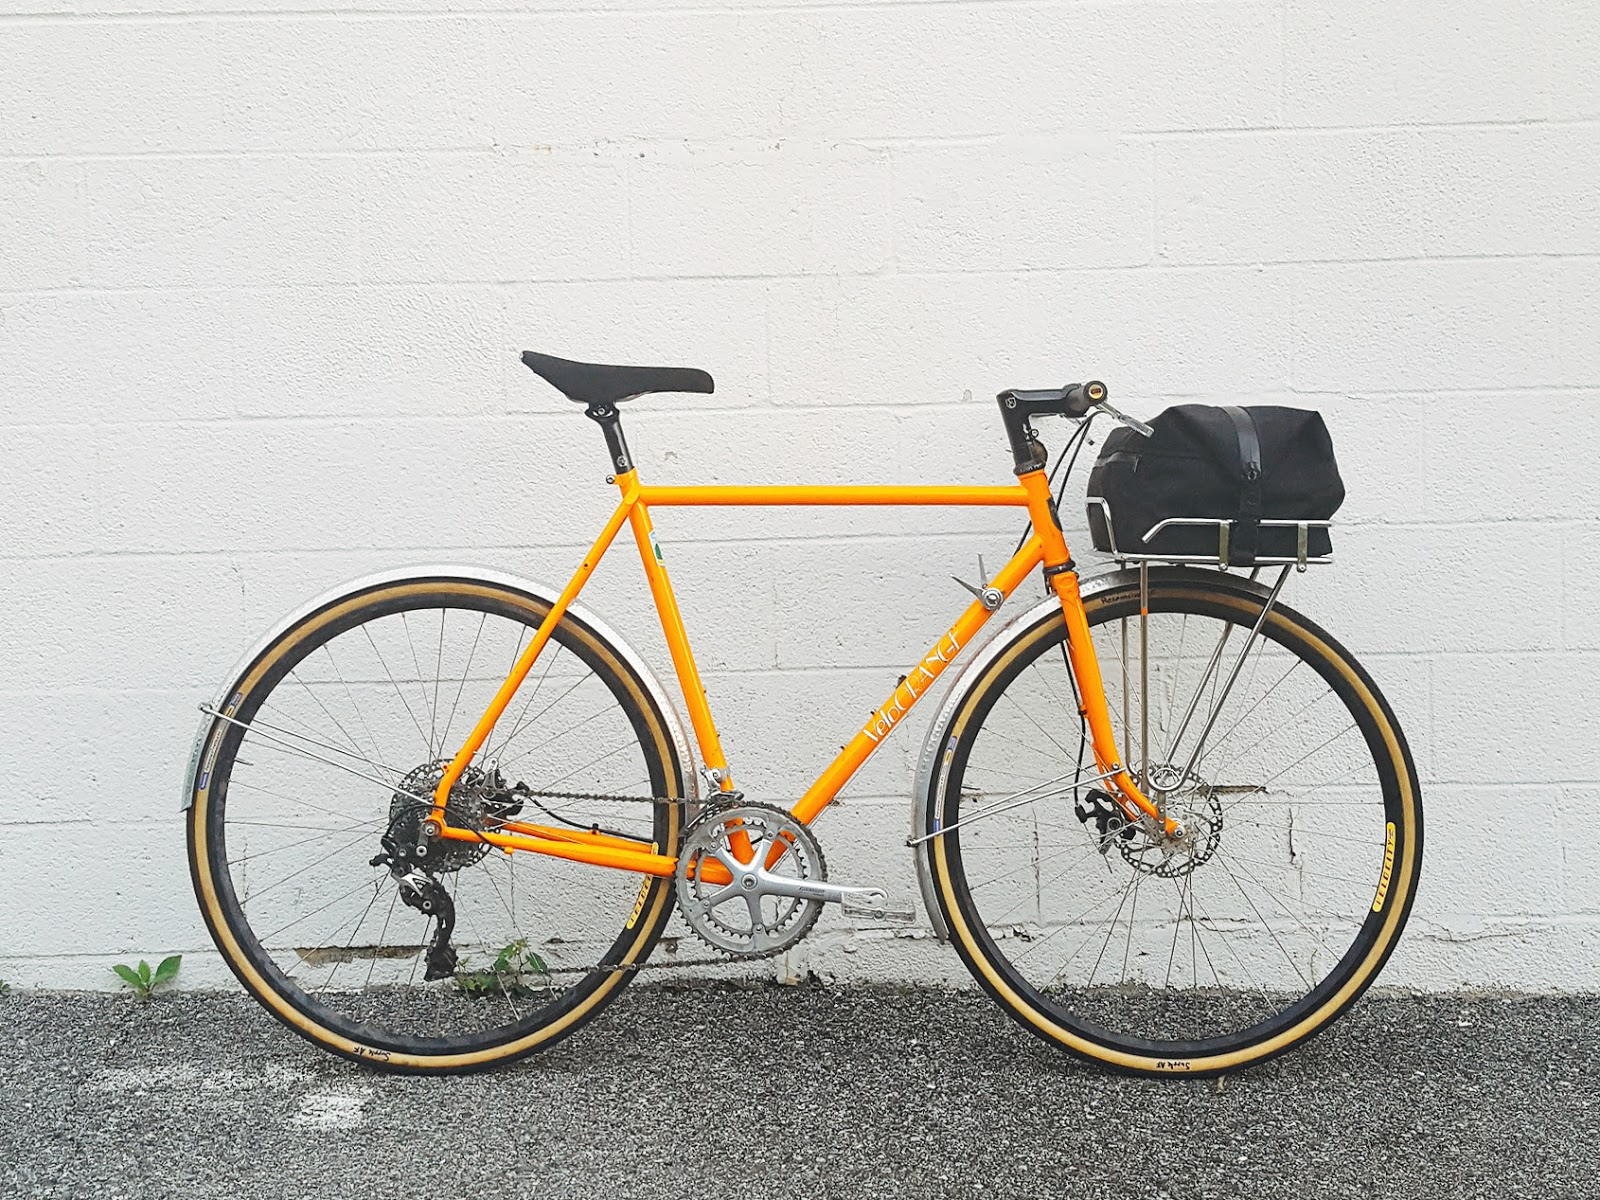 The Velo ORANGE Blog: Dia-Compe Shifters on 11 speeds and Dynasys